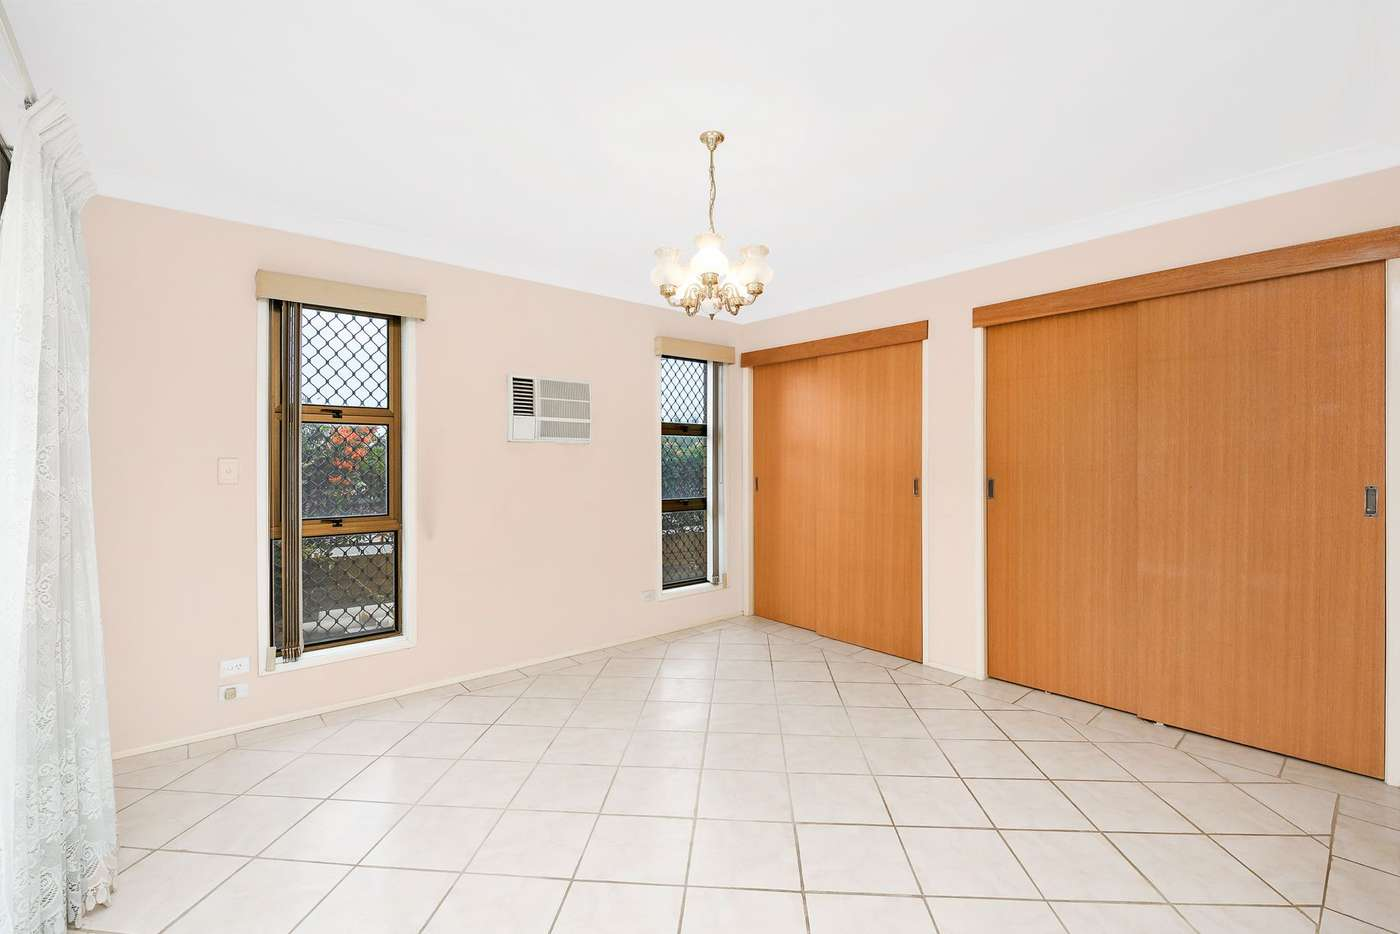 Fifth view of Homely house listing, 2 Garozzo Street, Boondall QLD 4034